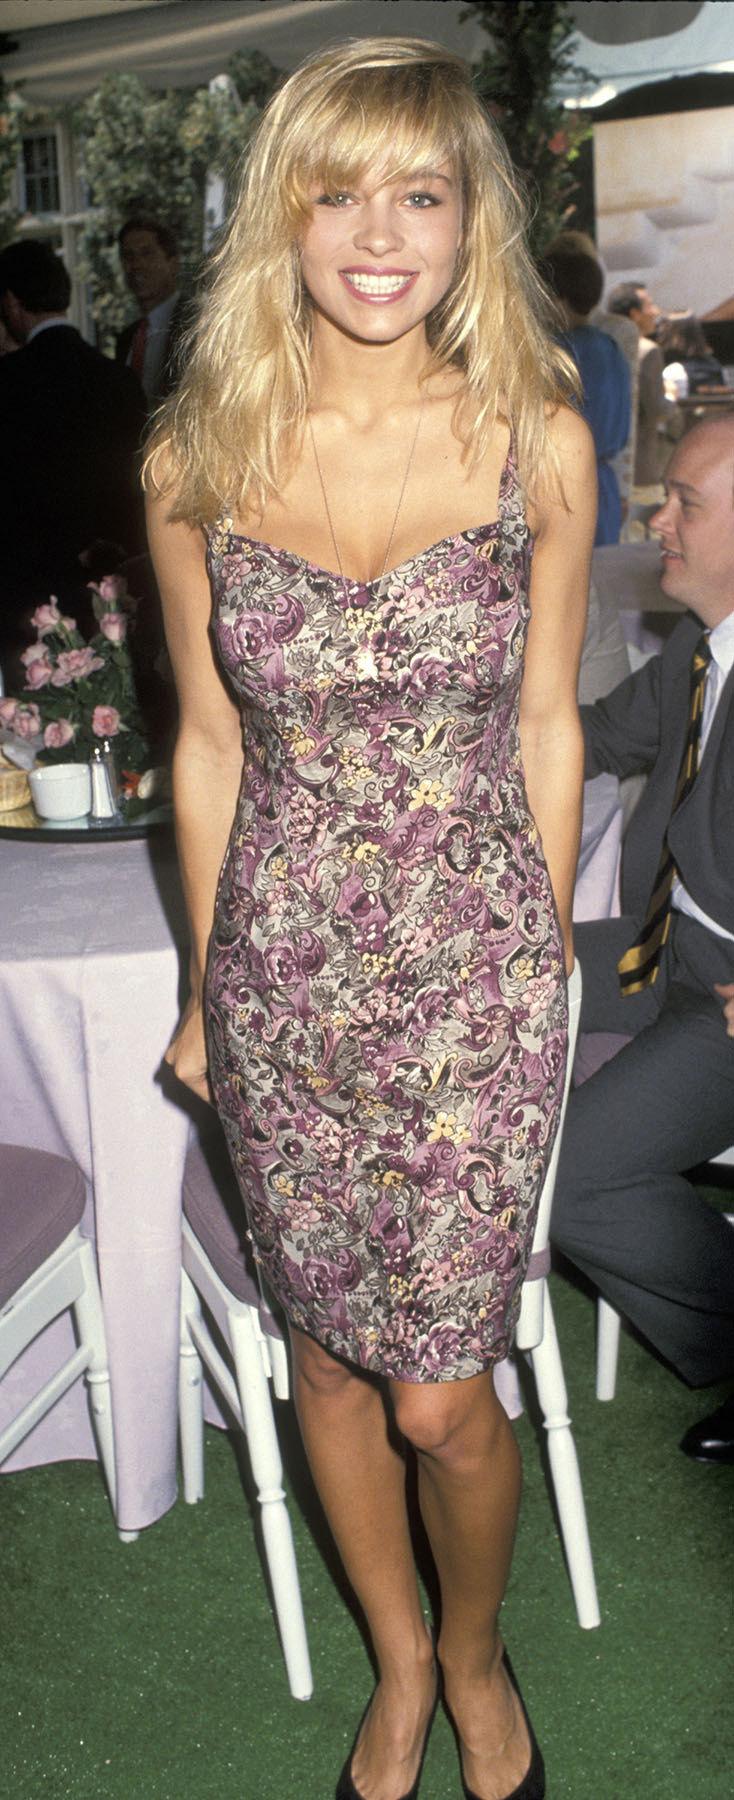 Pamela Anderson - Pamela Anderson before plastic surgery #photo